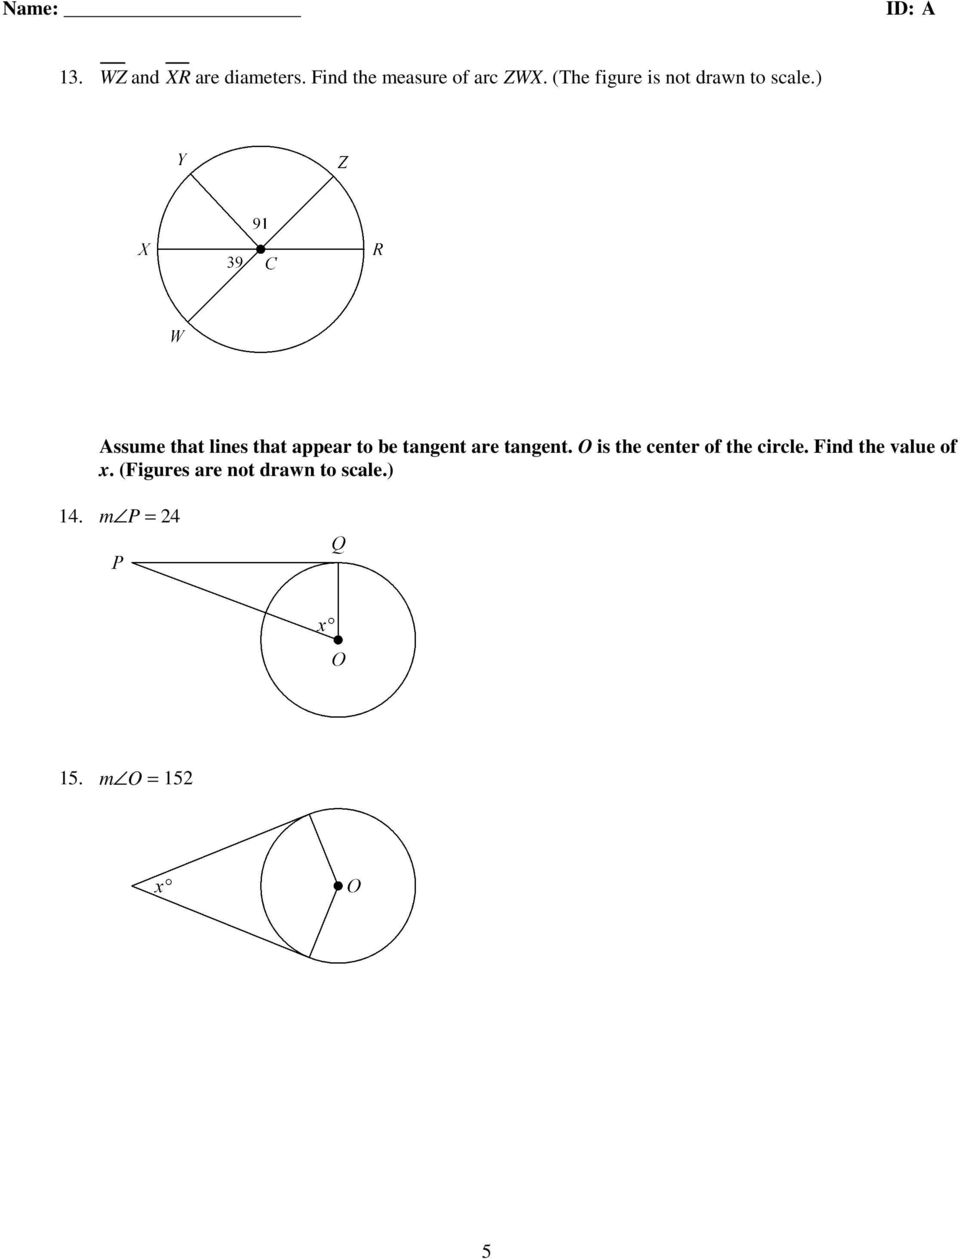 6 1 Circles Review besides 11 Arcs and Chords   Kuta Infinite Geometry Name Arcs and as well Holt Geometry 11 2 Arcs and Chords 11 2 Arcs and Chords Holt as well Blog Archives   Geometry likewise Arcs and Chords   Mrs  Newell's Math besides Grade 11  CIRCLES Worksheets  Answer Keys  – Ateneo High further GEOMETRY B  CIRCLE TEST PRACTICE   PDF in addition Chords And Arcs Worksheet The best worksheets image collection together with Chords in Circles   CK 12 Foundation likewise Tangent arcs chords geometry homework help   Buy essay university further 10 3 Arcs and Chords 2017 ink notebook additionally Inscribed Angle  Definition  Theorem     Video   Lesson furthermore Angles in Circles using Secants  Tangents  and Chords Partner moreover 11 Arcs and Chords   Kuta additionally Arc length and Area of Sector Worksheets besides GEOMETRY. on arcs and chords worksheet answers